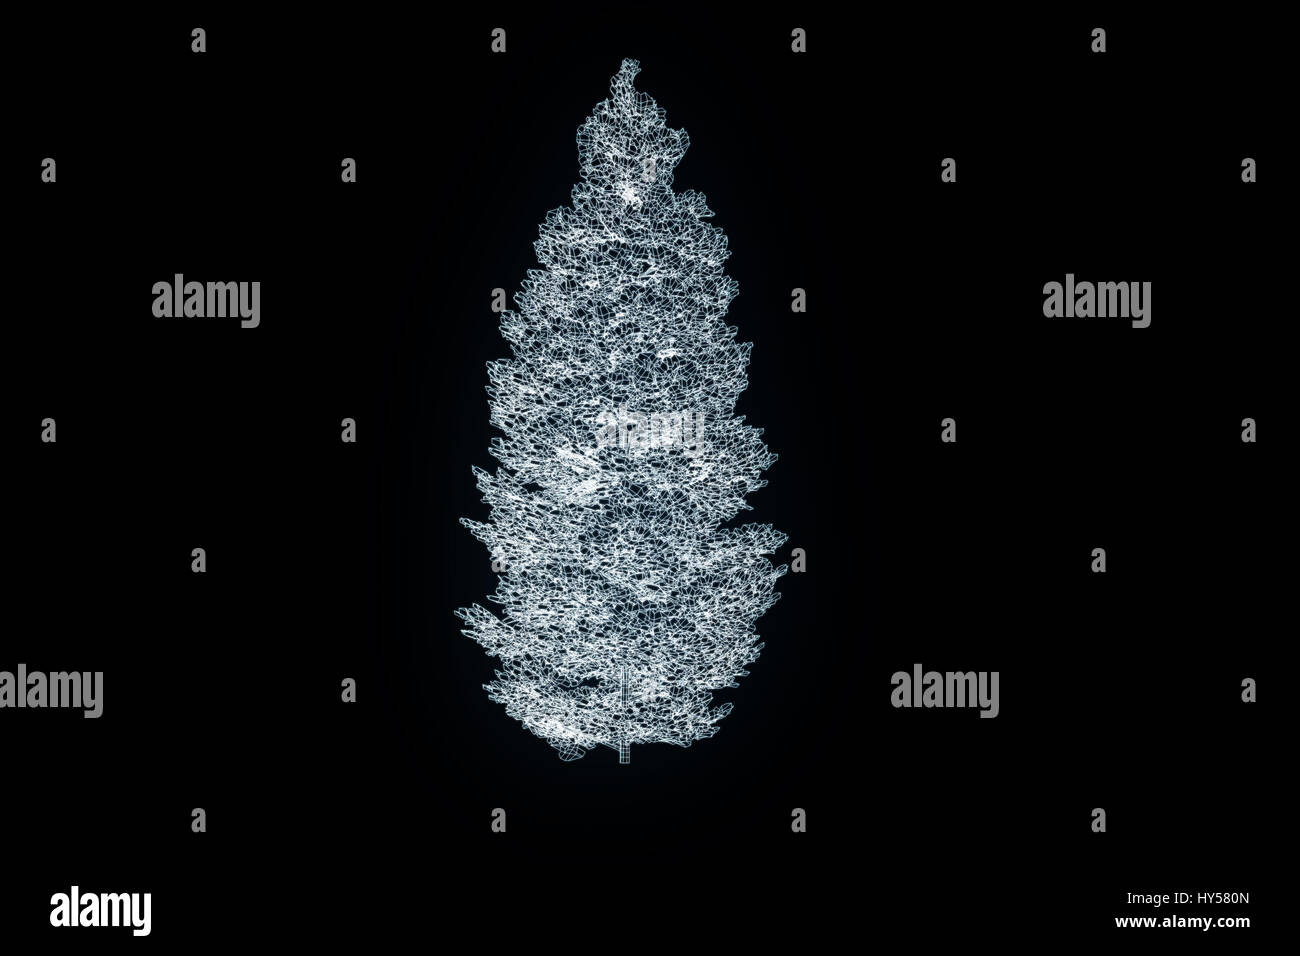 Tree Plant In Wireframe Hologram Stock Photos & Tree Plant In ...